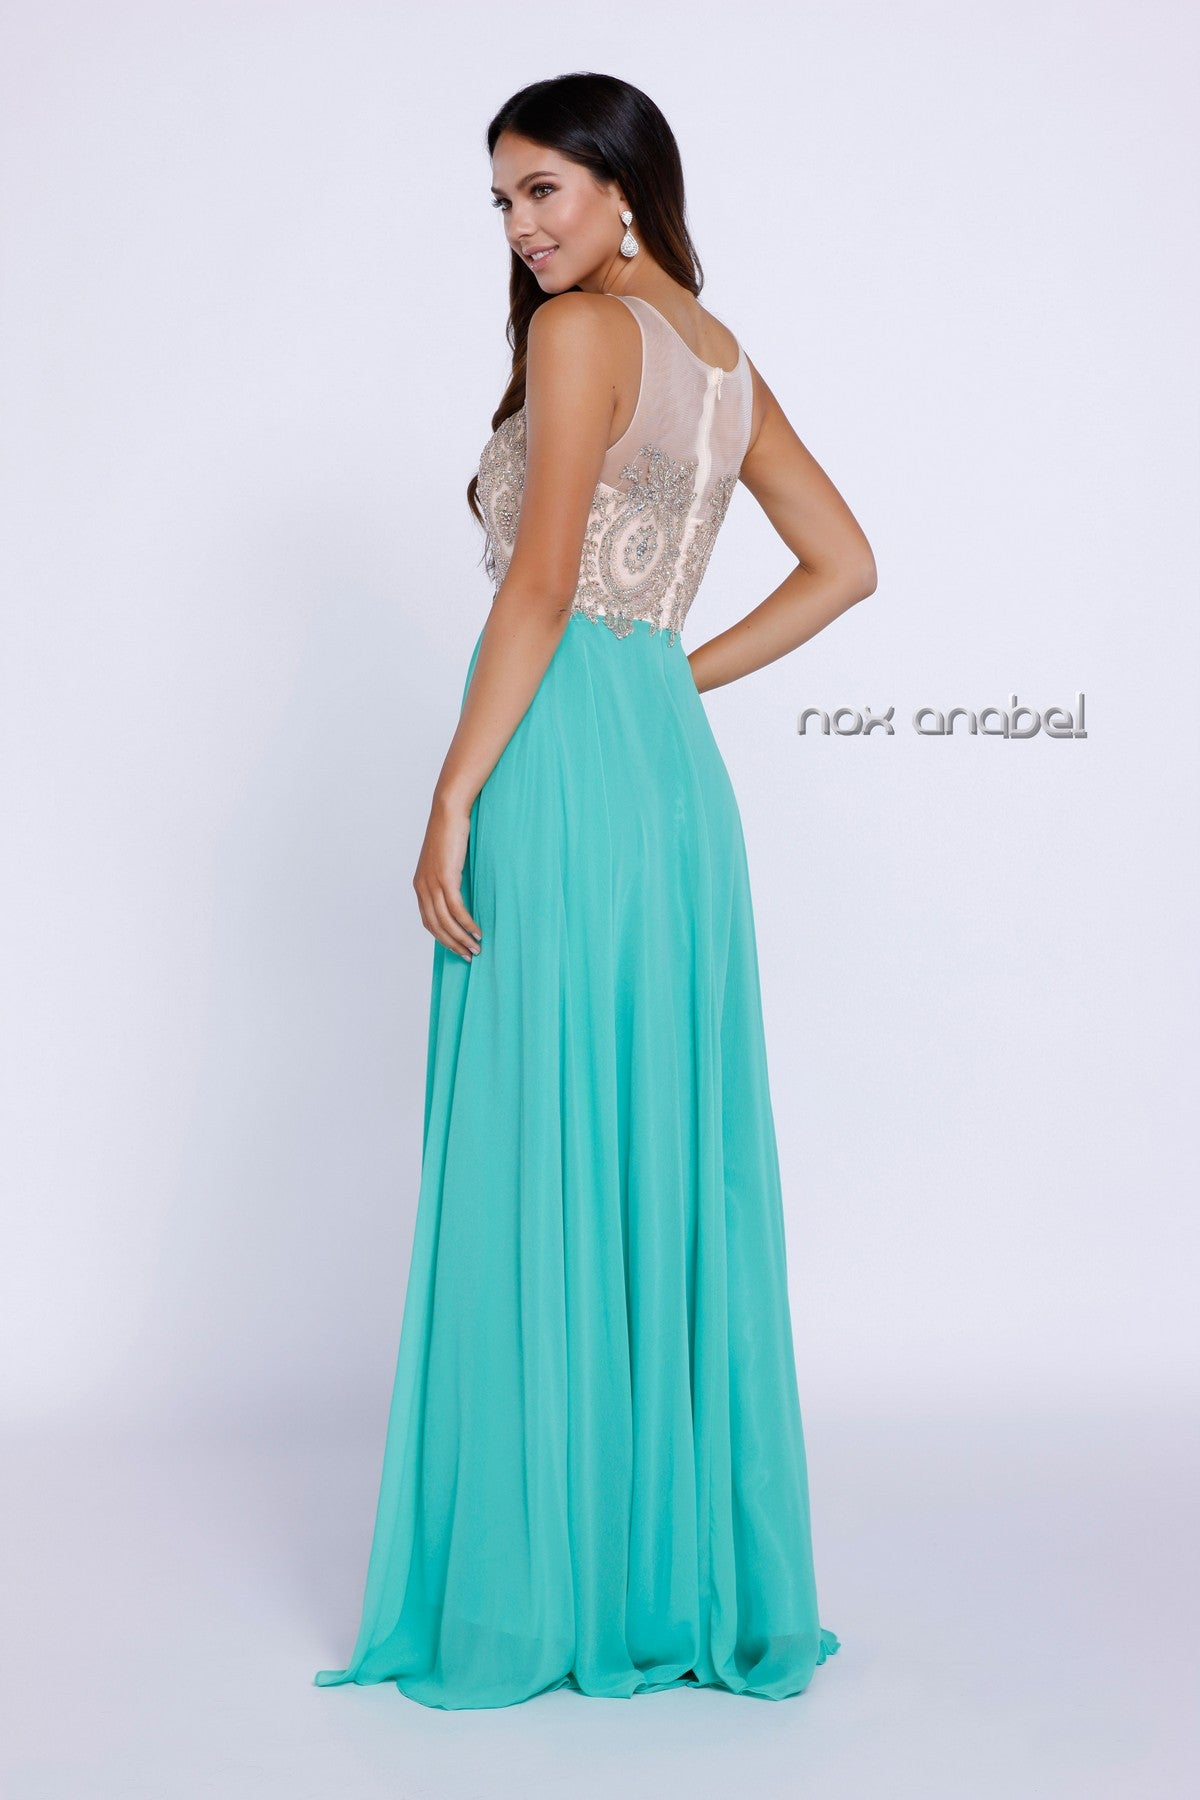 Green Appliqued Bodice A-Line Chiffon Formal Dress Sleeveless Back View